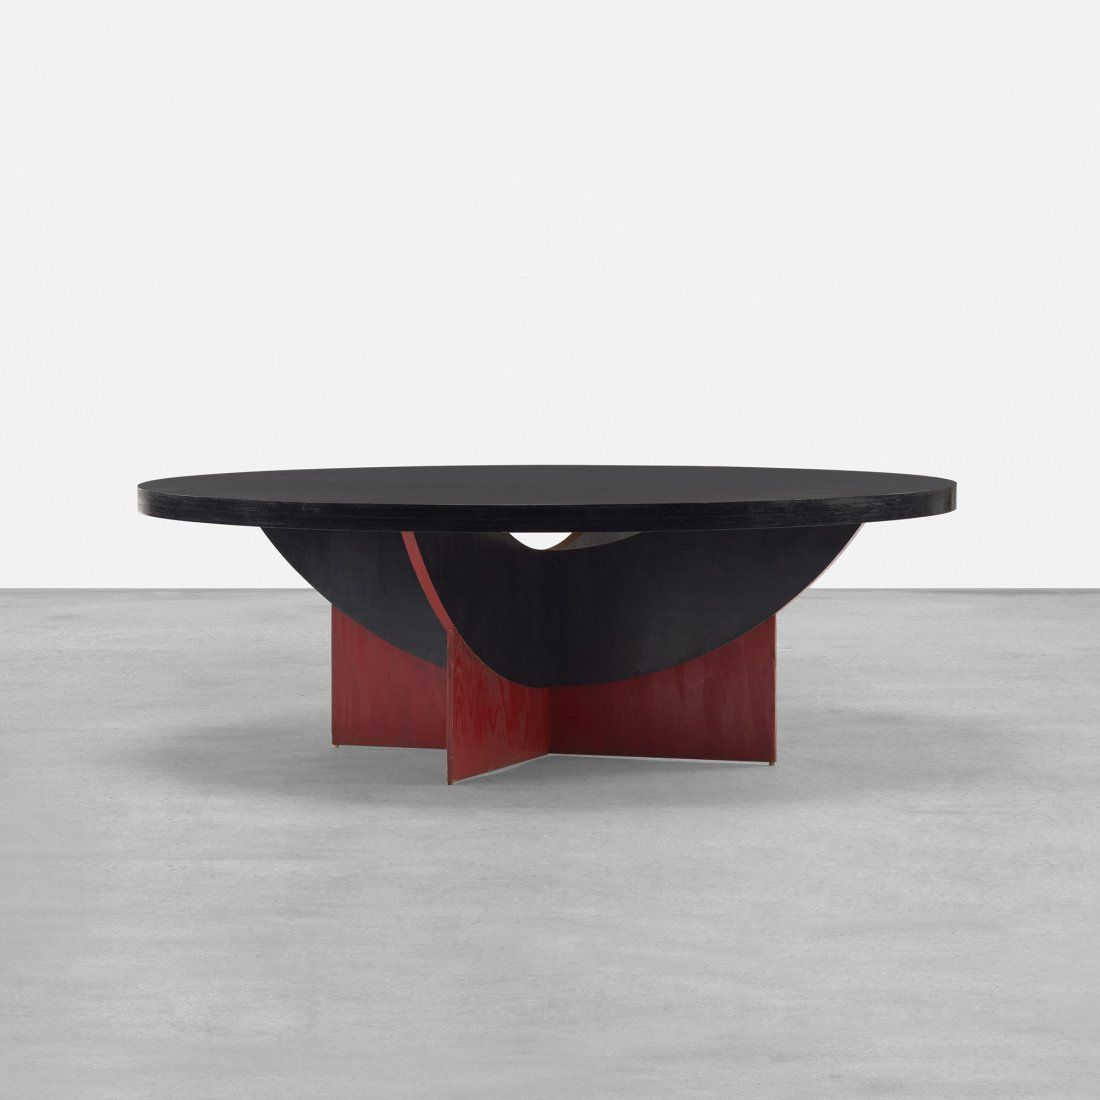 Frank Lloyd Wright Lacquered Ash Coffee Table For The Luis And Ethel Marden House 1952